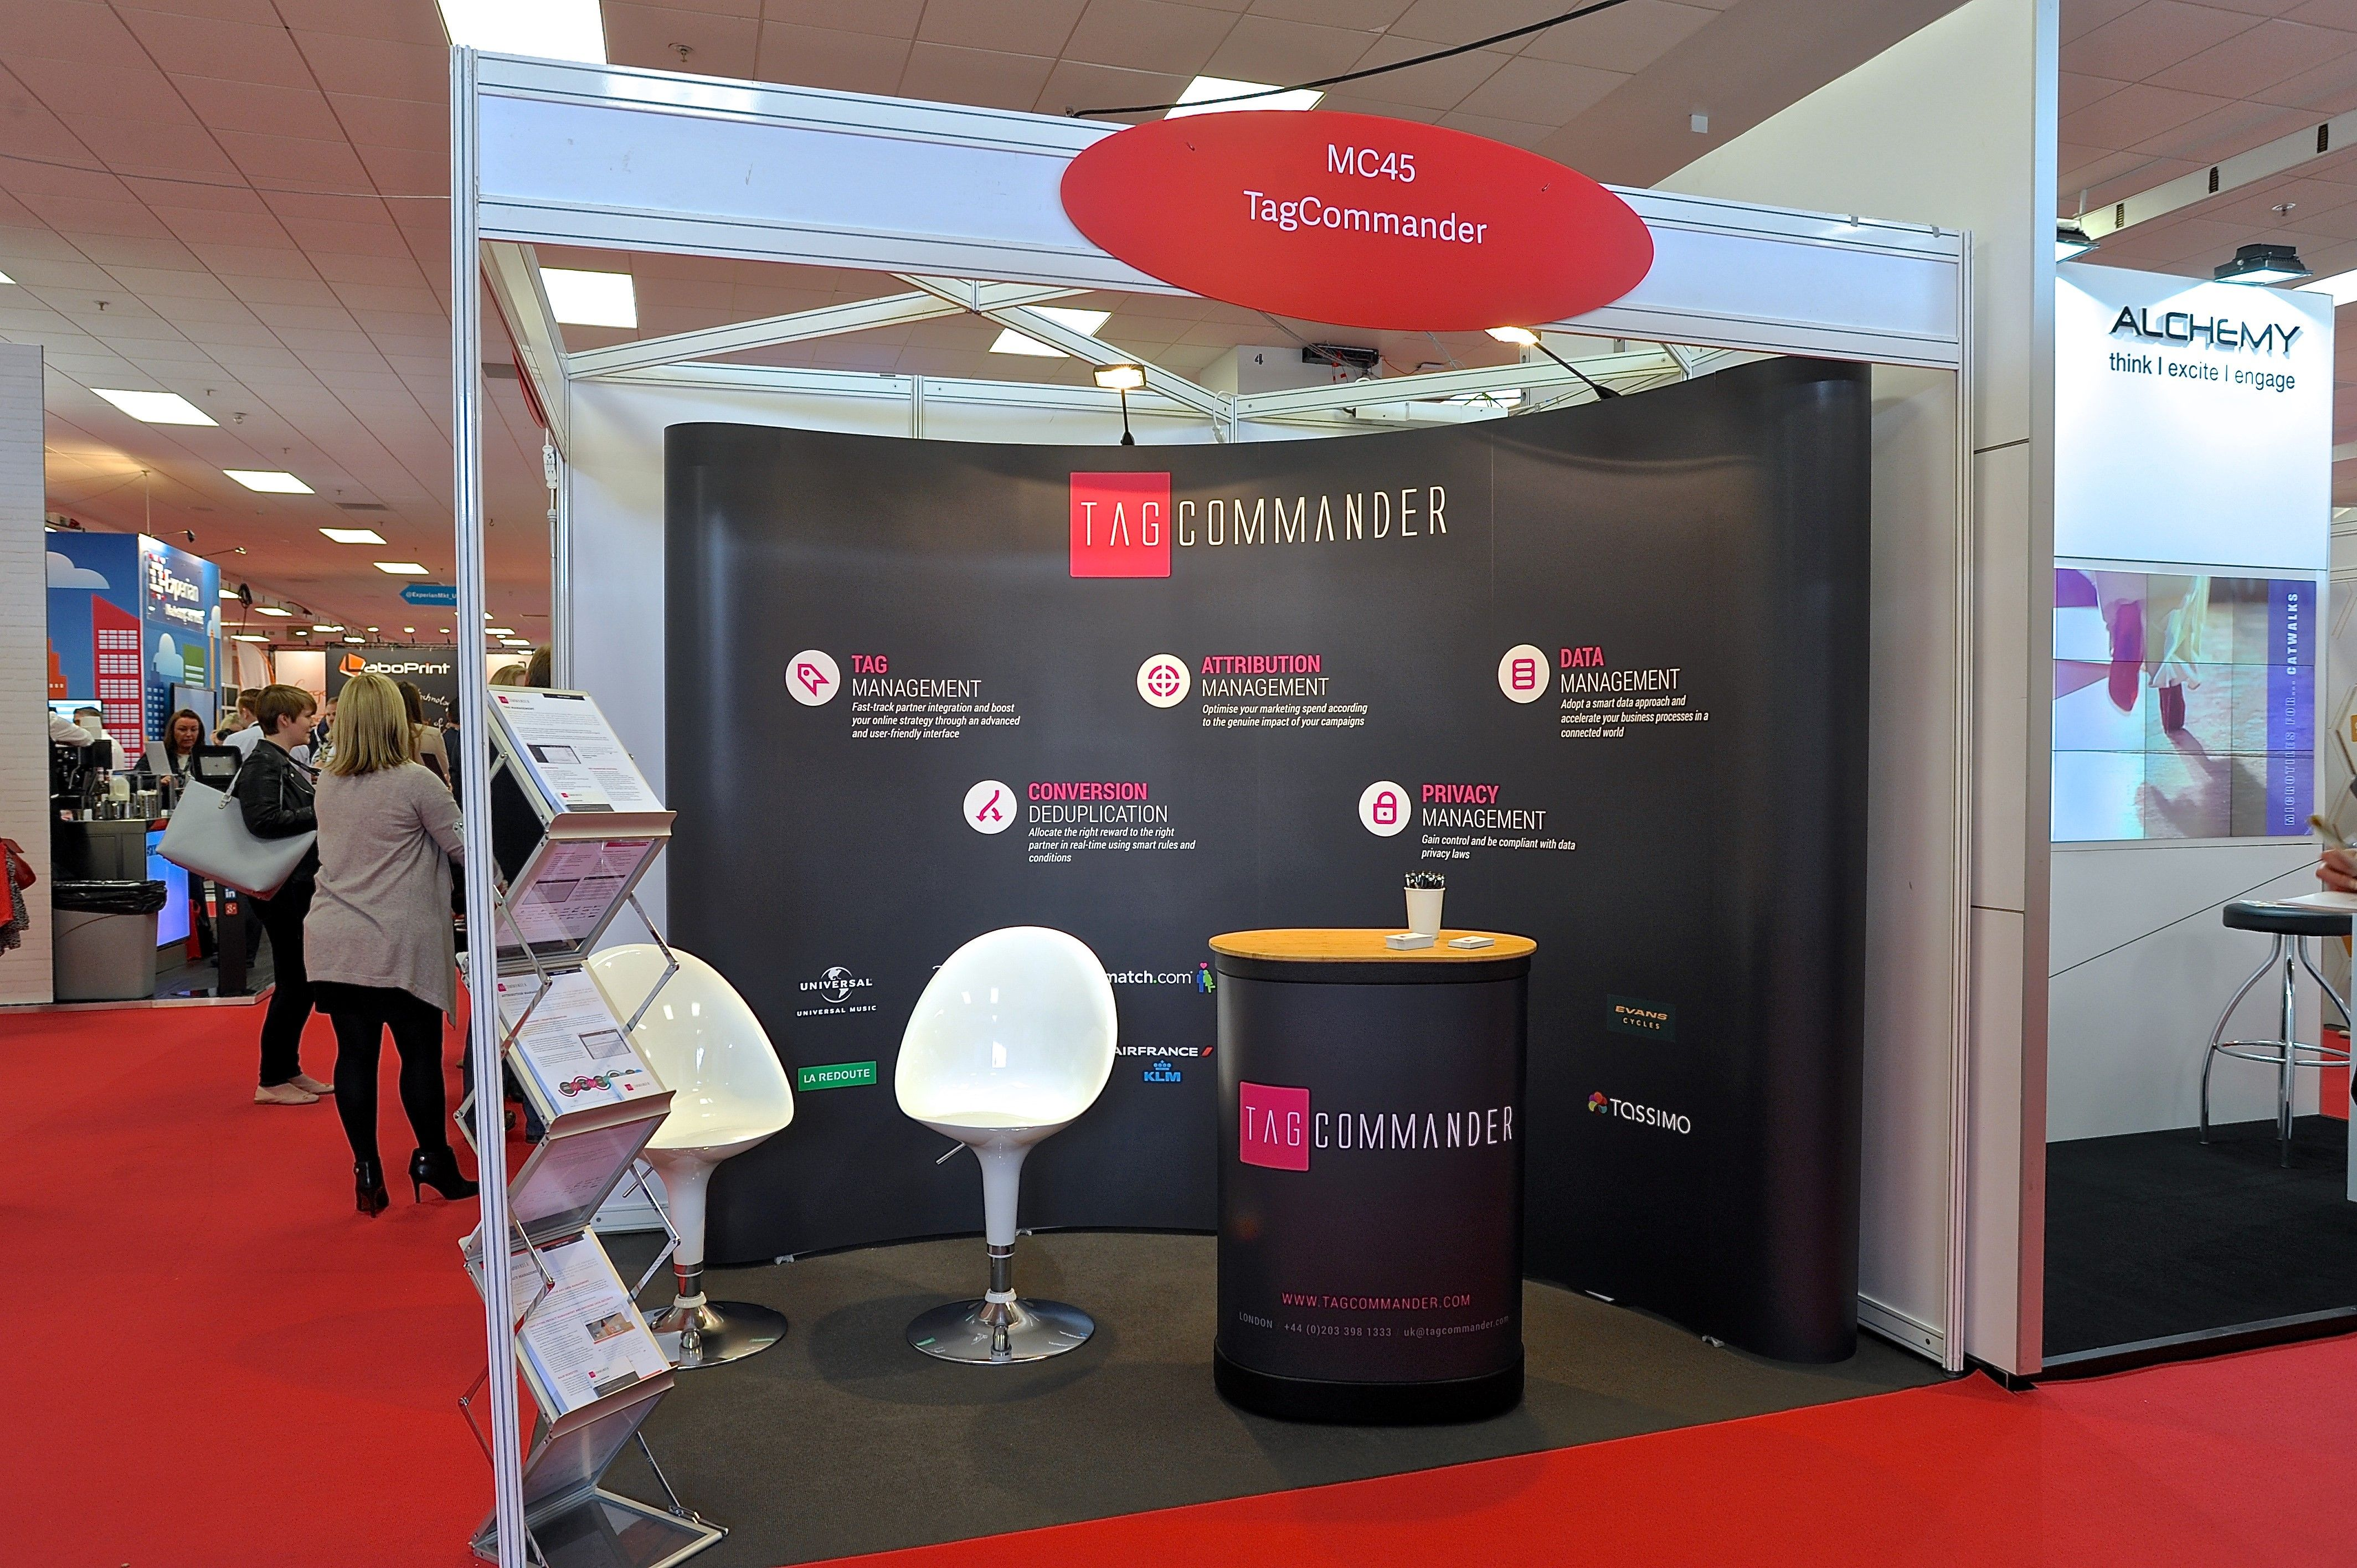 Marketing Exhibition Stand Out : Modular exhibition stand for tagcommander by